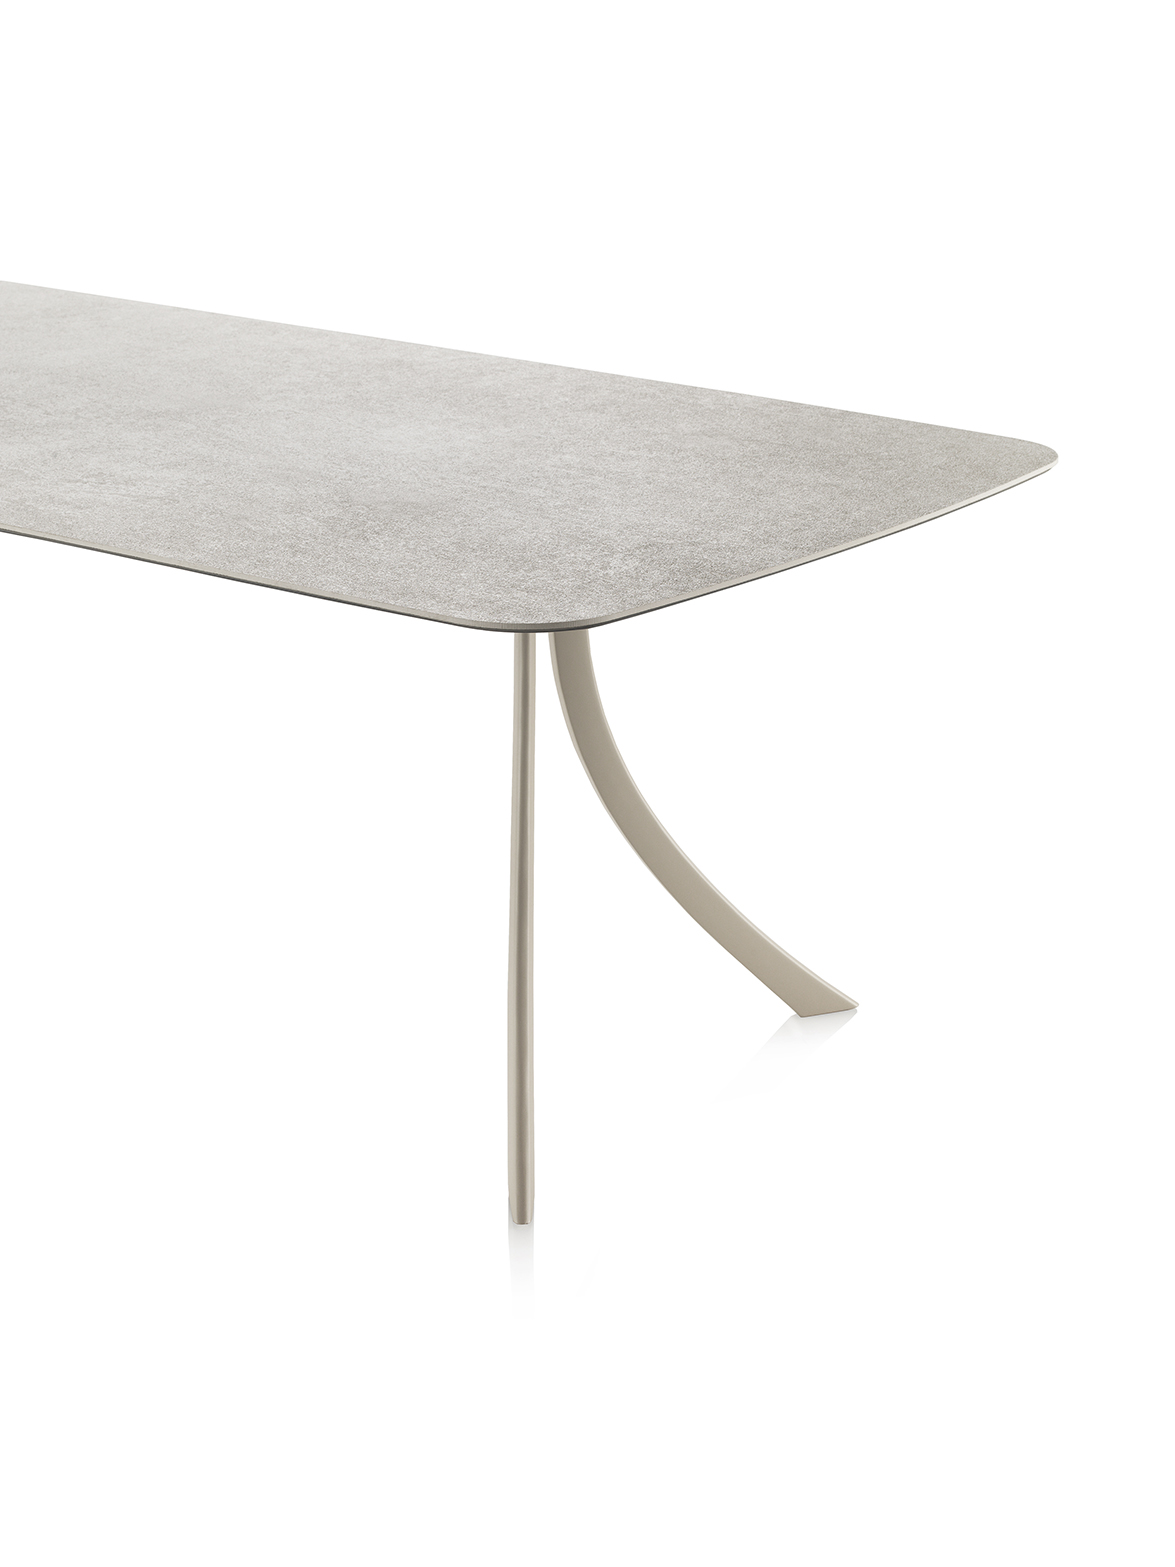 Falcata dining table by Lievore Altherr Molina 05